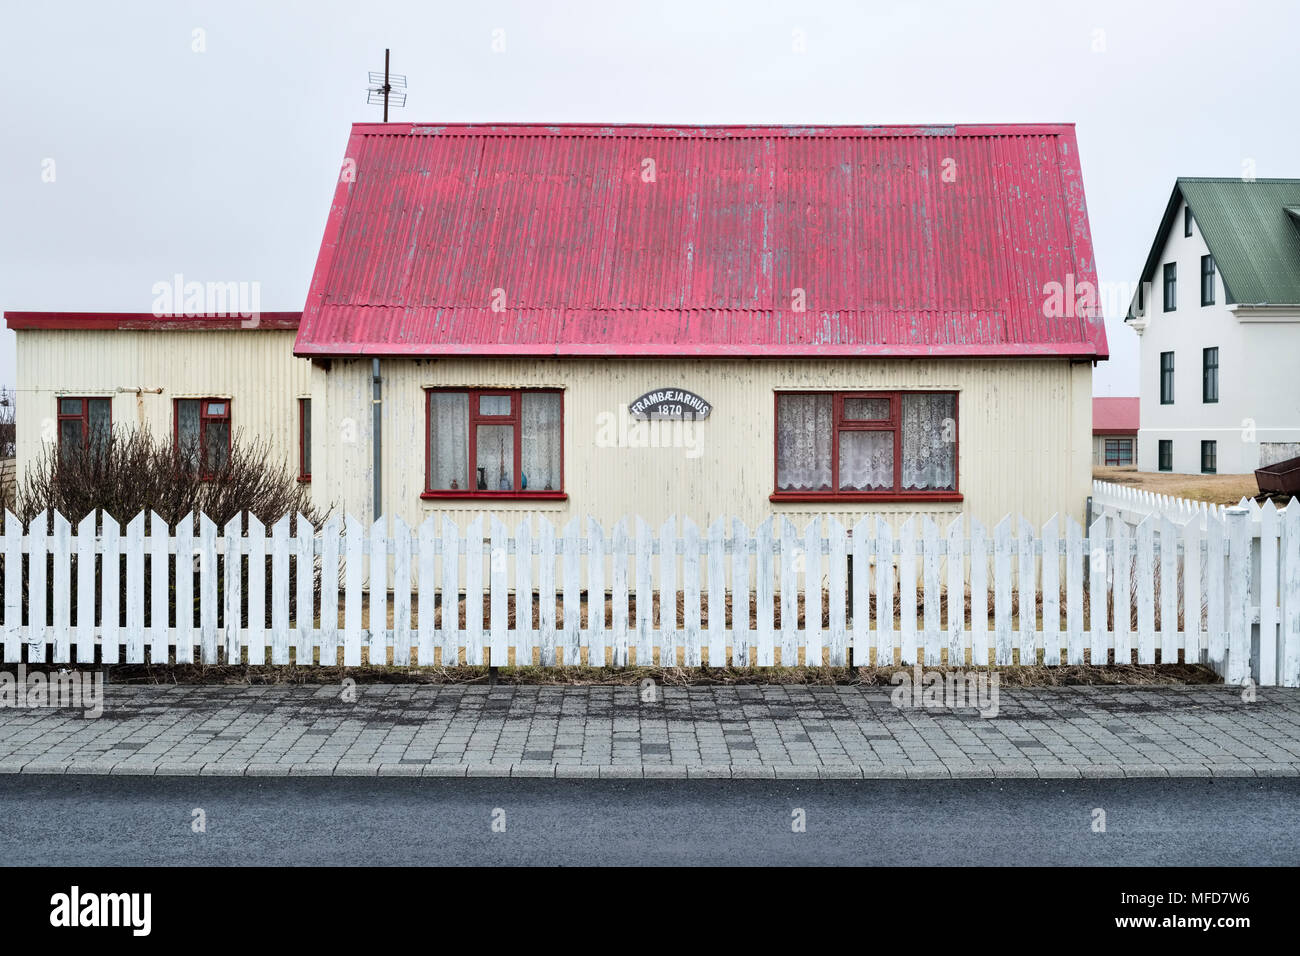 Eyrarbakki, South Iceland. Typical old 19c corrugated-iron cottage with white picket fence, with a sign dating it to 1870 - Stock Image